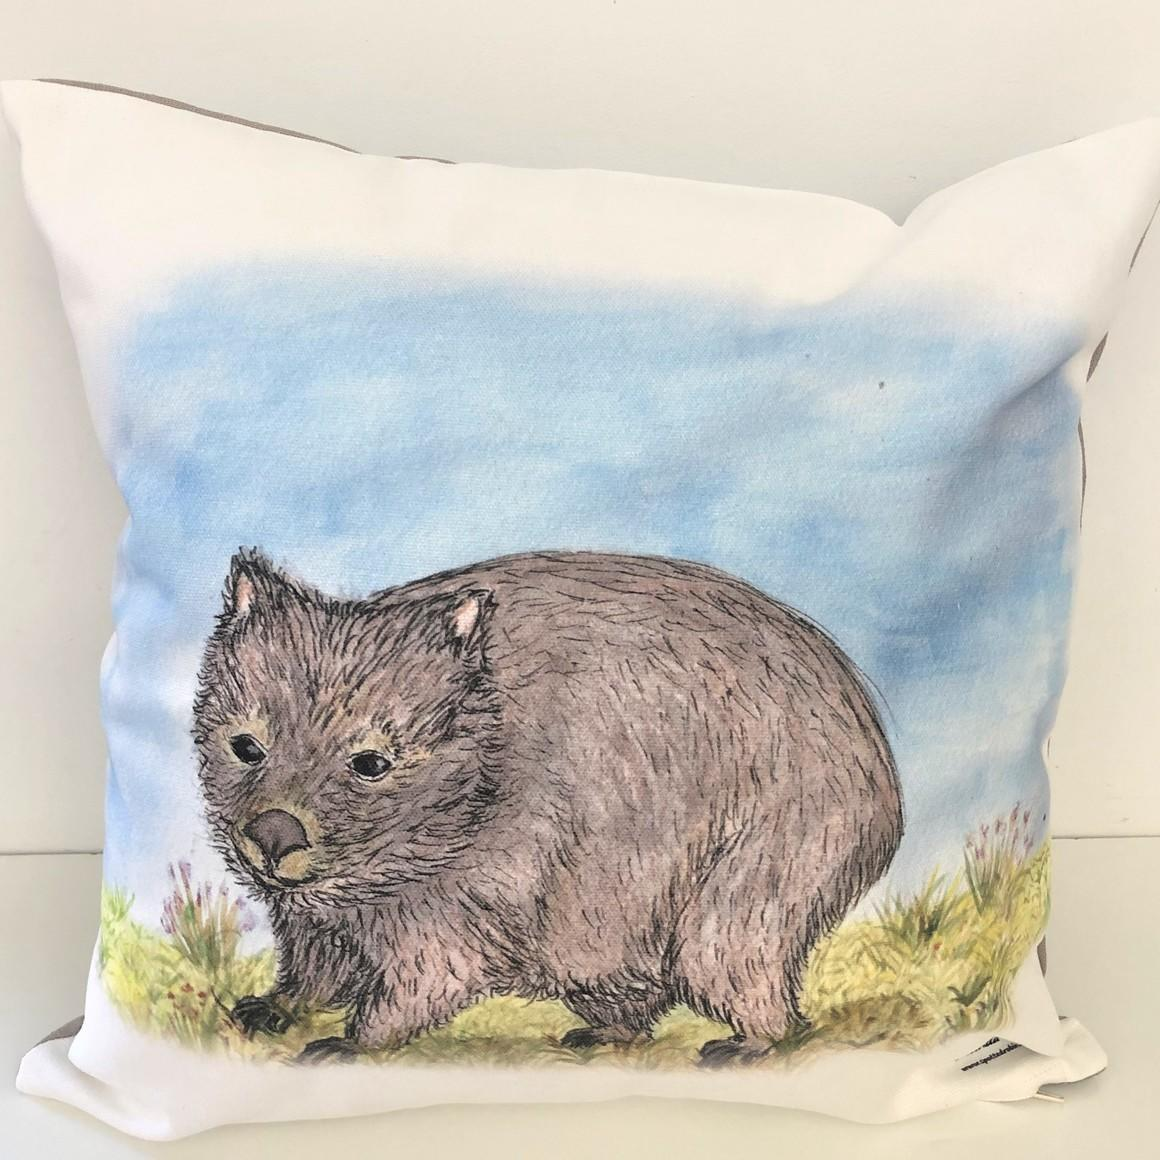 Cushion Cover - Hatty the Wombat   Trada Marketplace